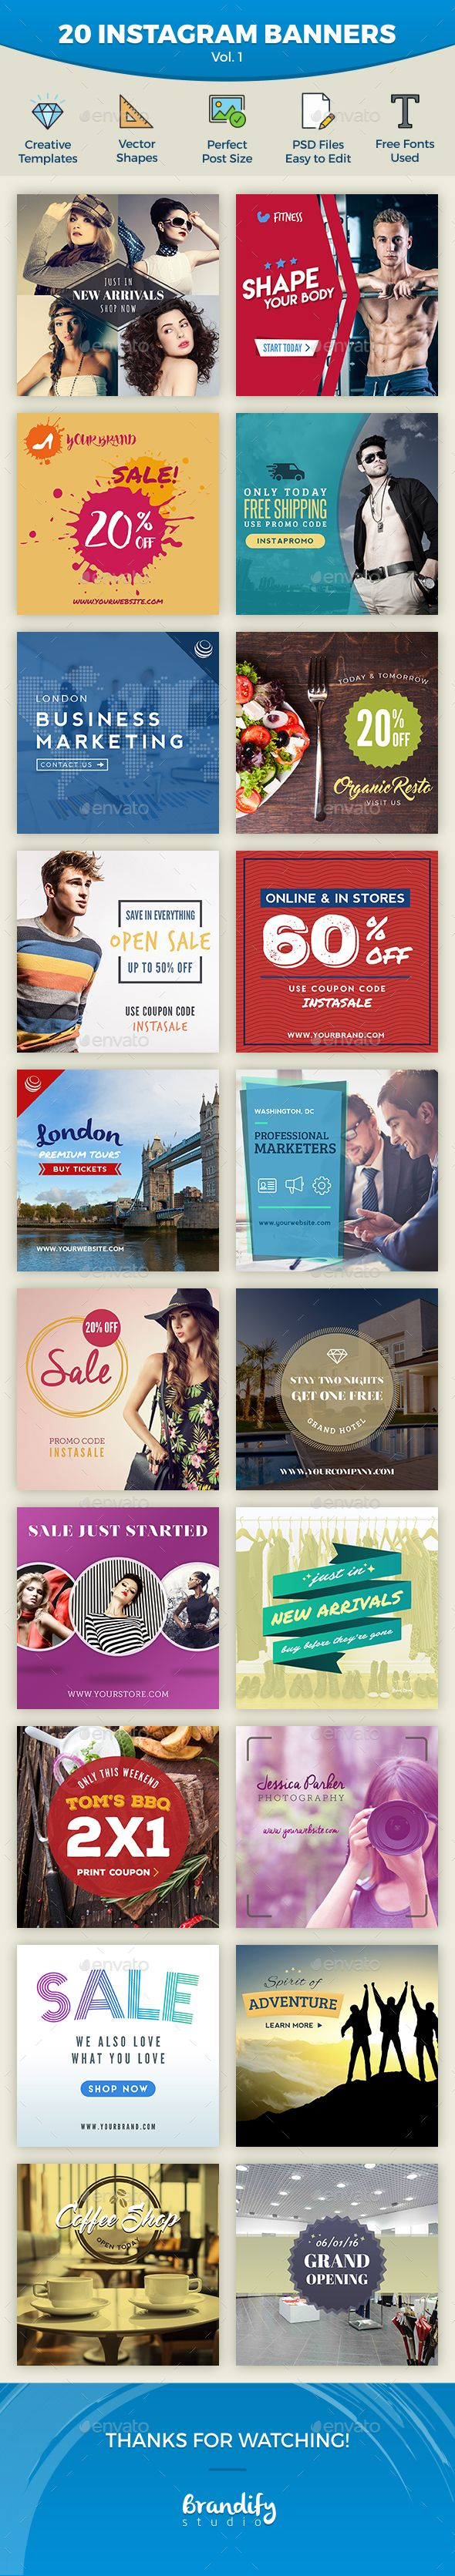 Download Free Graphicriver Instagram Promotional Banners #banner #business #clothing #corporate #coupon #deal #discount #fashion #fashionsale #insta #instagram #instagrambanner #instagrambundle #InstagramPromo #instagramsale #newarrival #promote #promotion #promotional #sale #sales #socialmediabanner #squarebanner